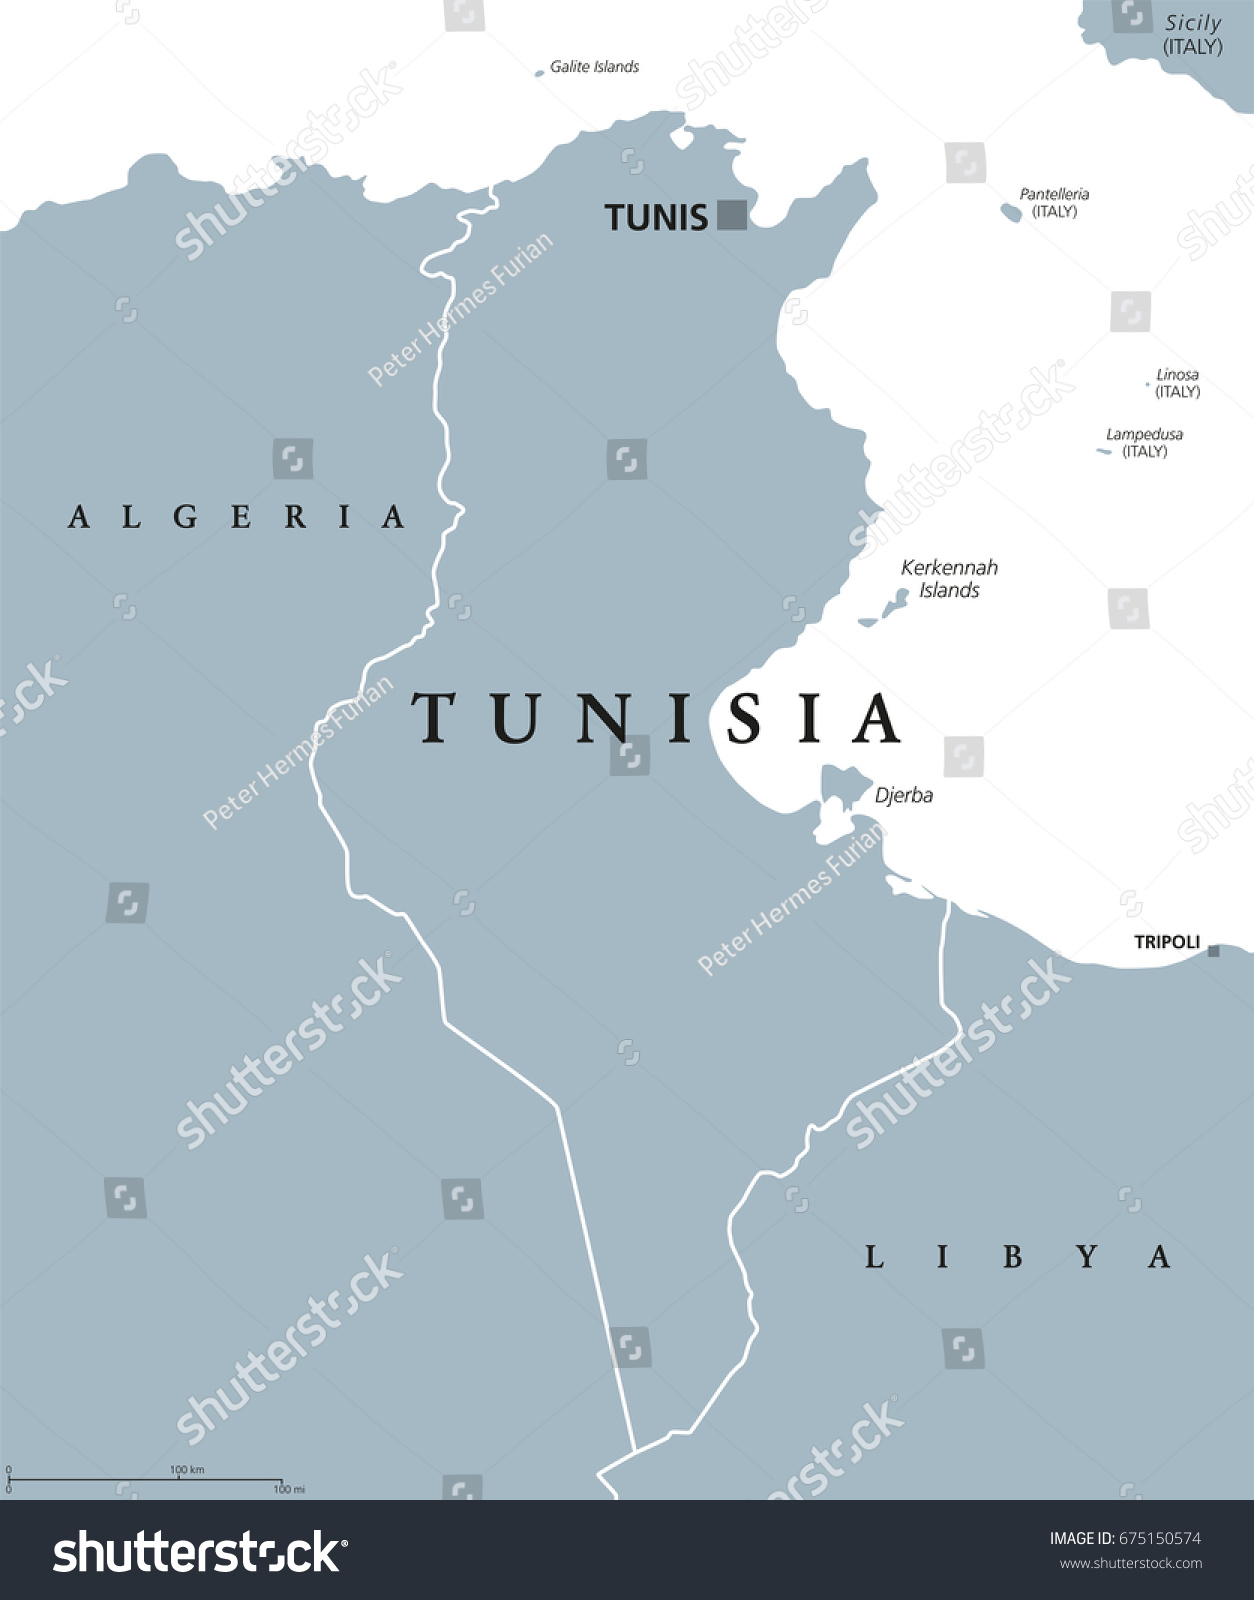 Tunisia Political Map Capital Tunis Borders Stock Vector - Tunisia country political map